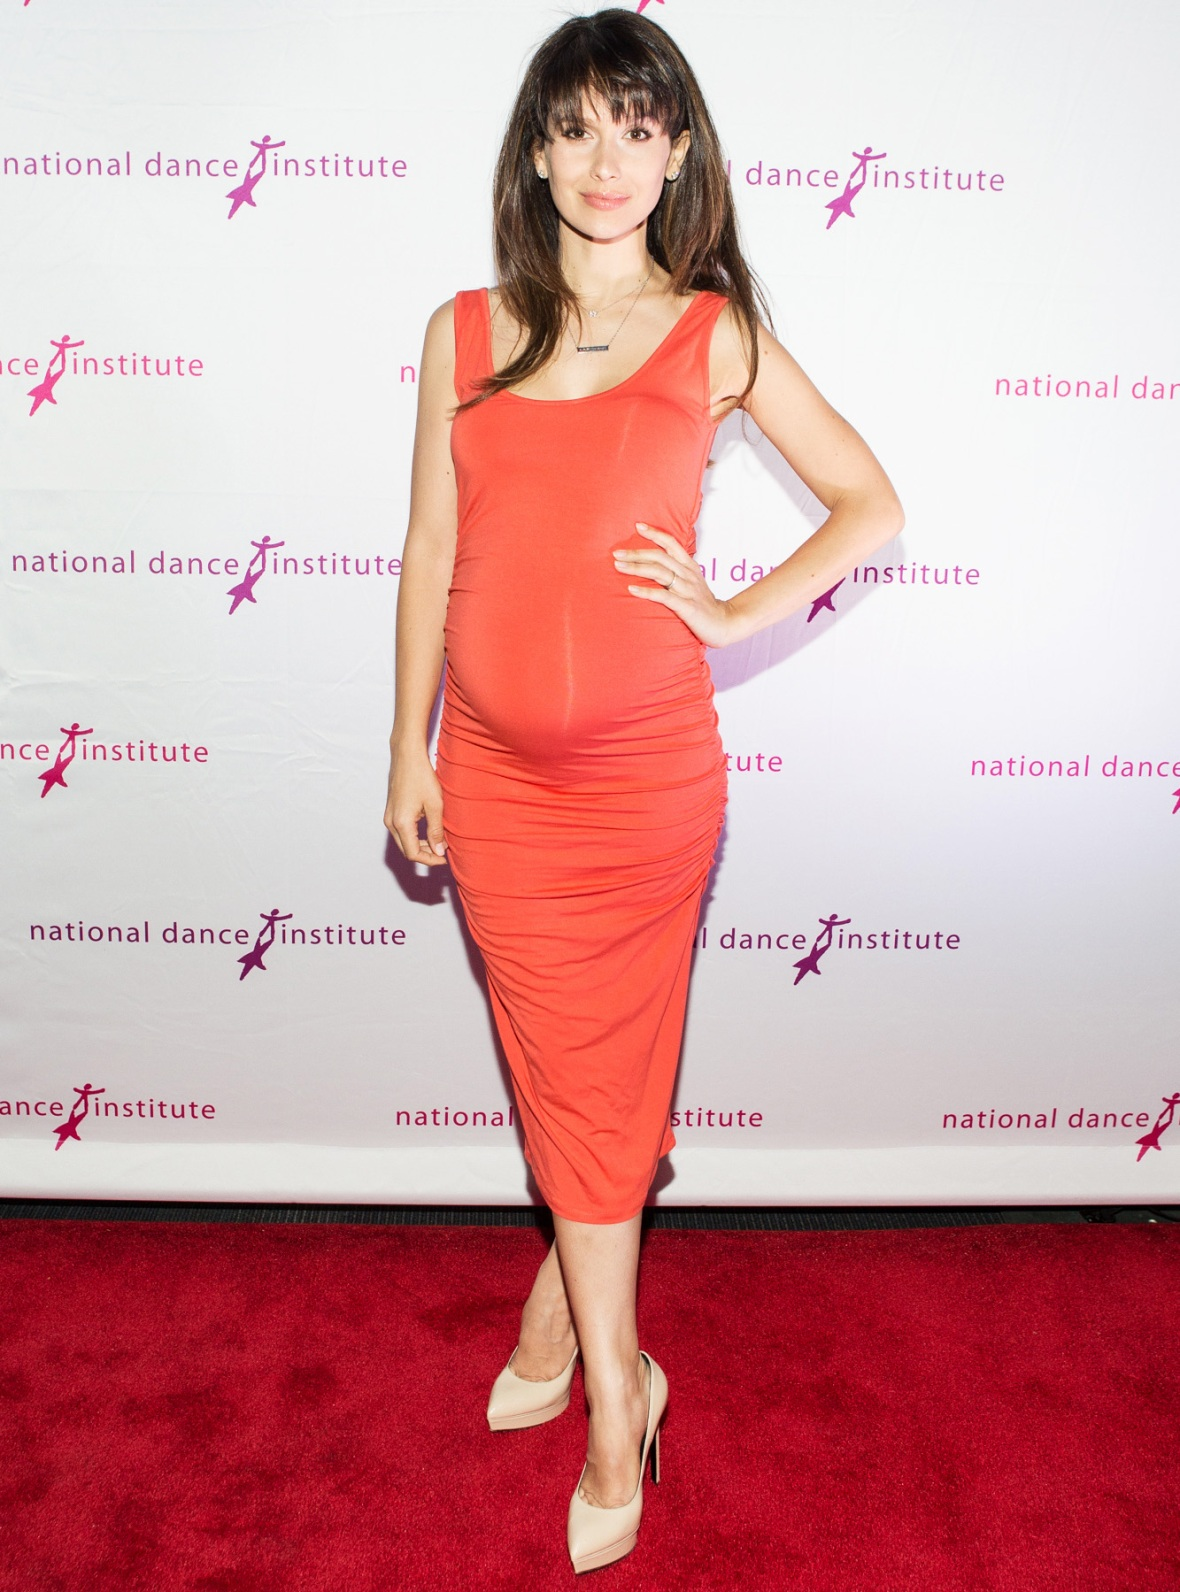 hilaria baldwin - photo #37